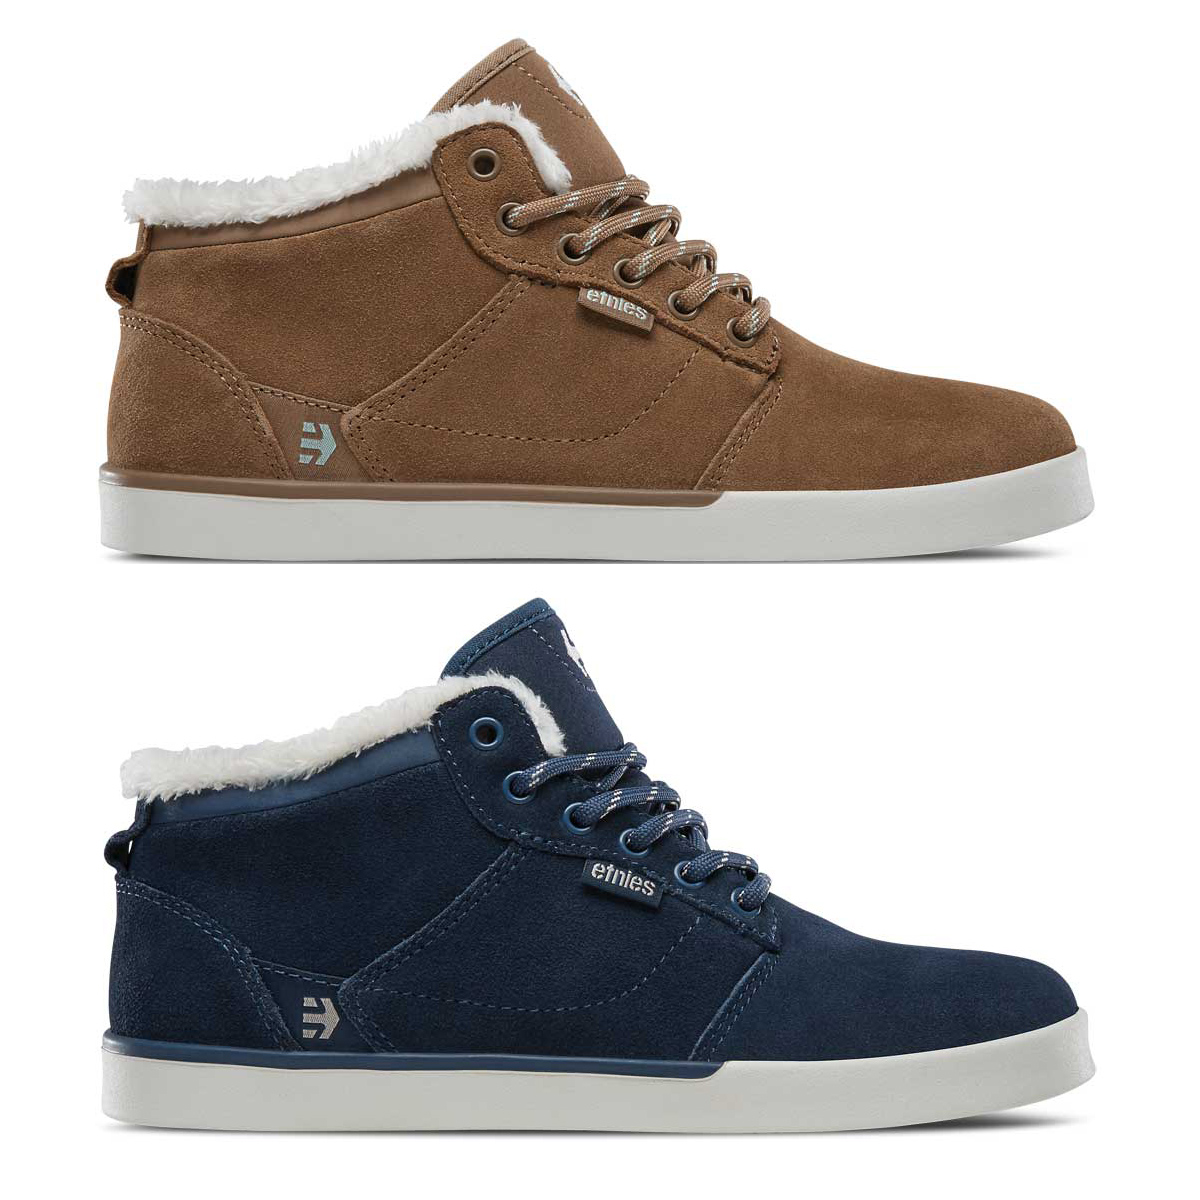 Details about Etnies Womens Skate Shoes - Jefferson MID - Skateboarding  Trainers b3f58a124c